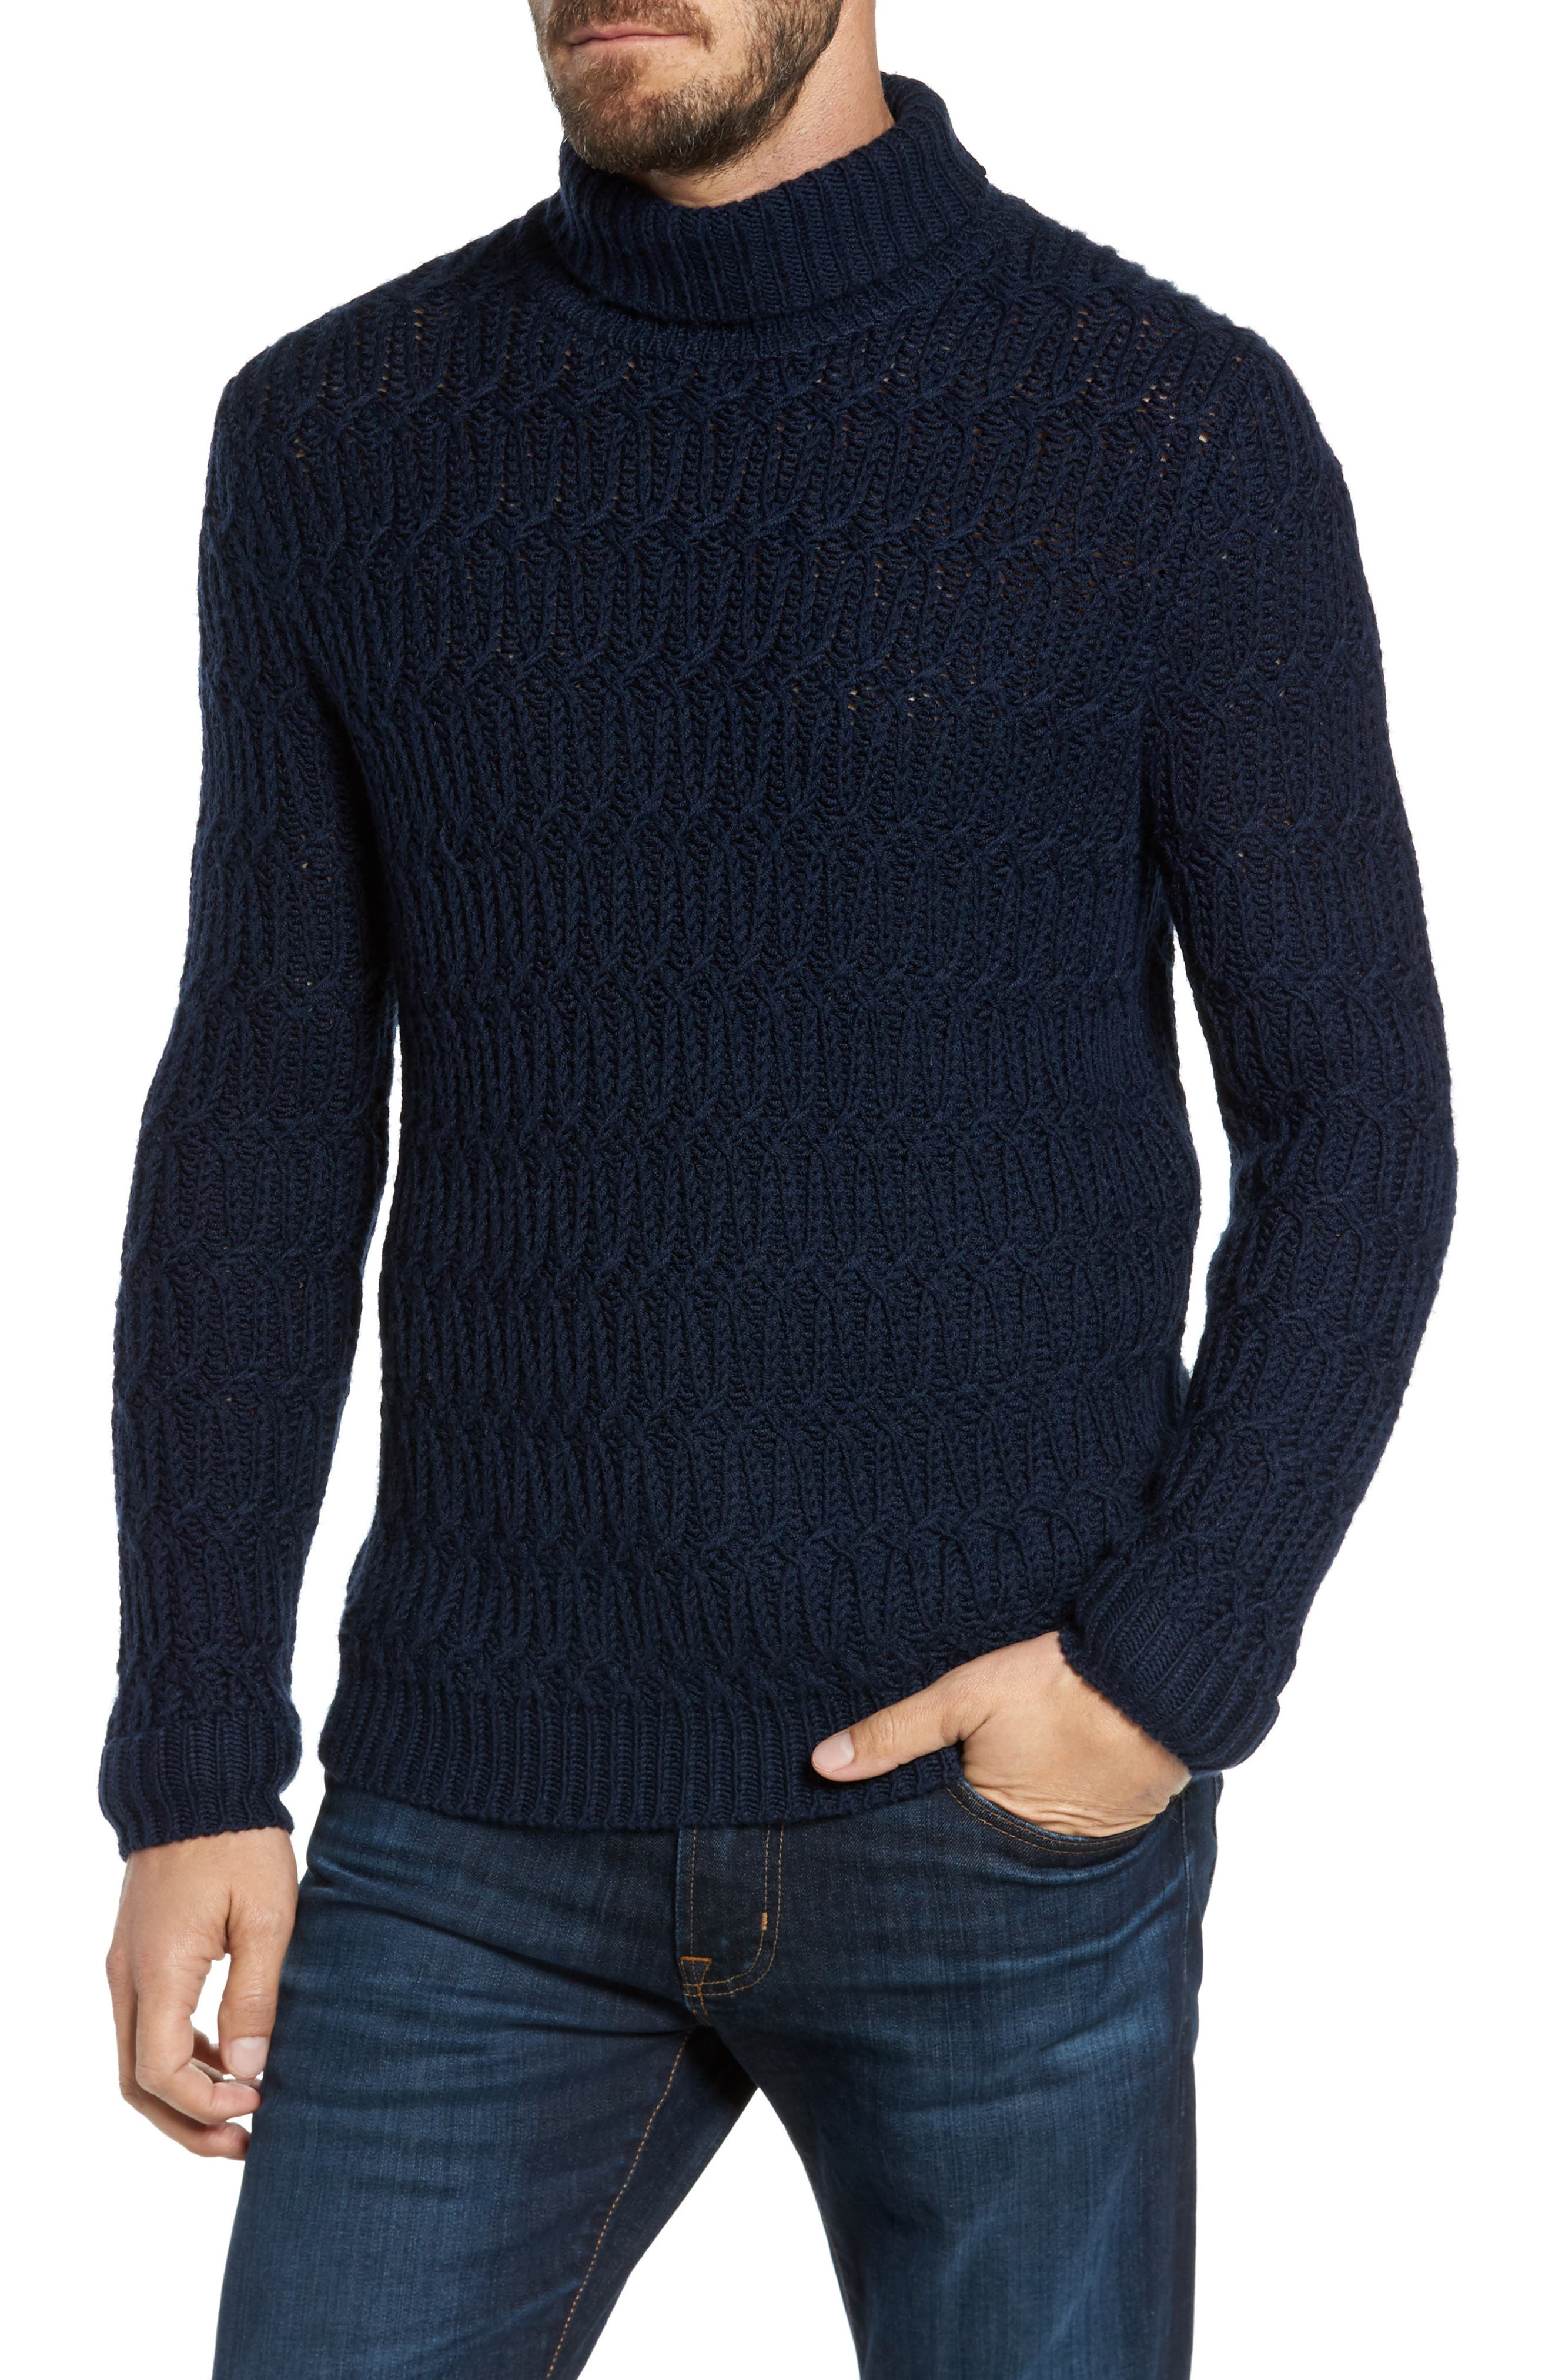 Main Image - Nordstrom Men's Shop Chunky Turtleneck Sweater